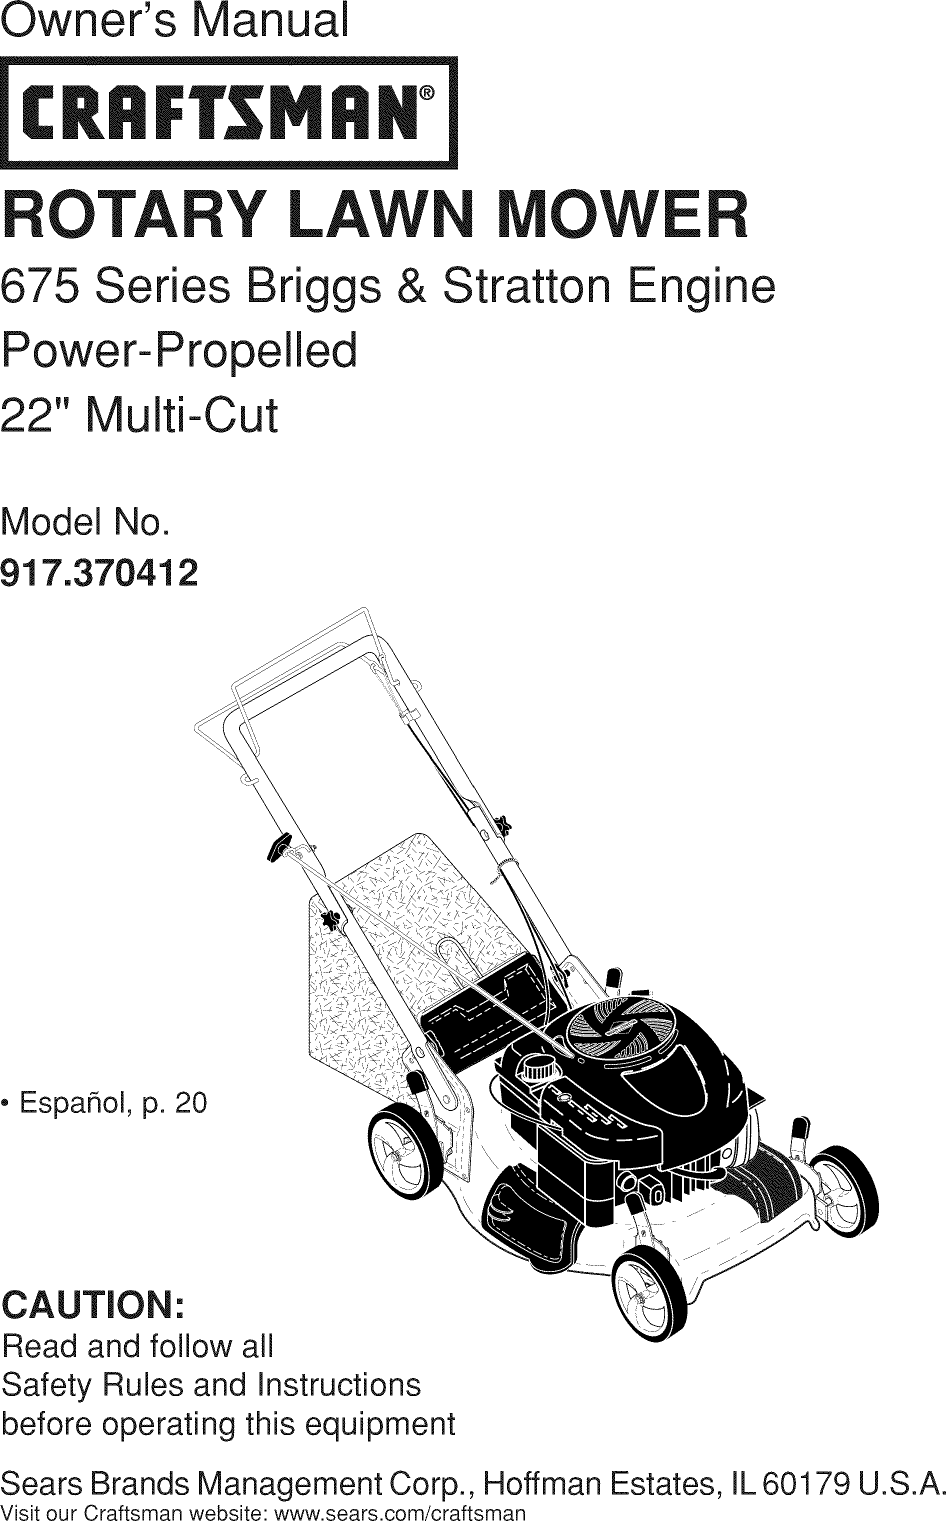 Craftsman 917370412 1211101L User Manual MOWER Manuals And